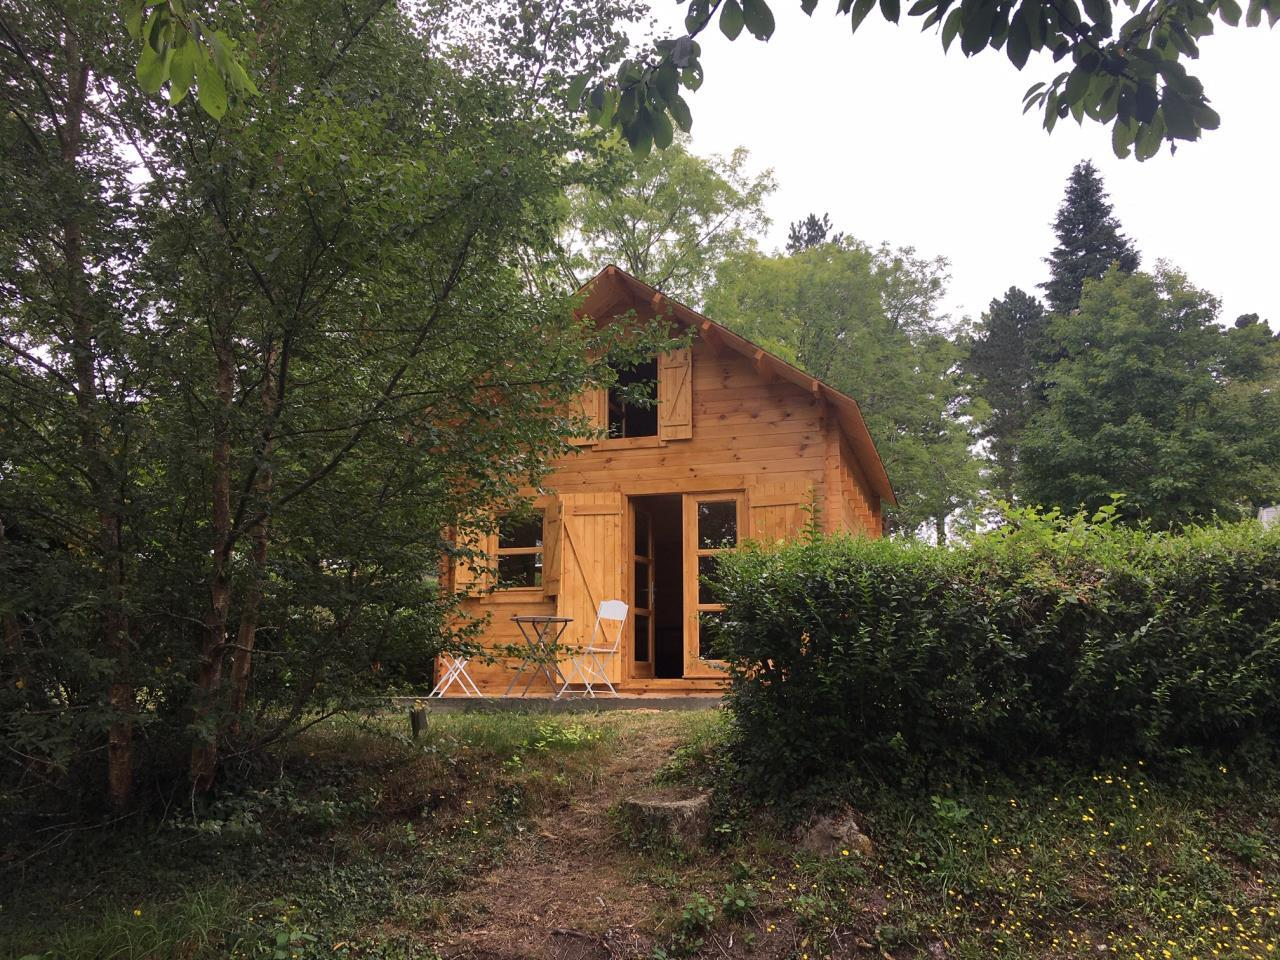 Accommodation - Nature Chalet For Hikers - Sites et Paysages Le Panoramic